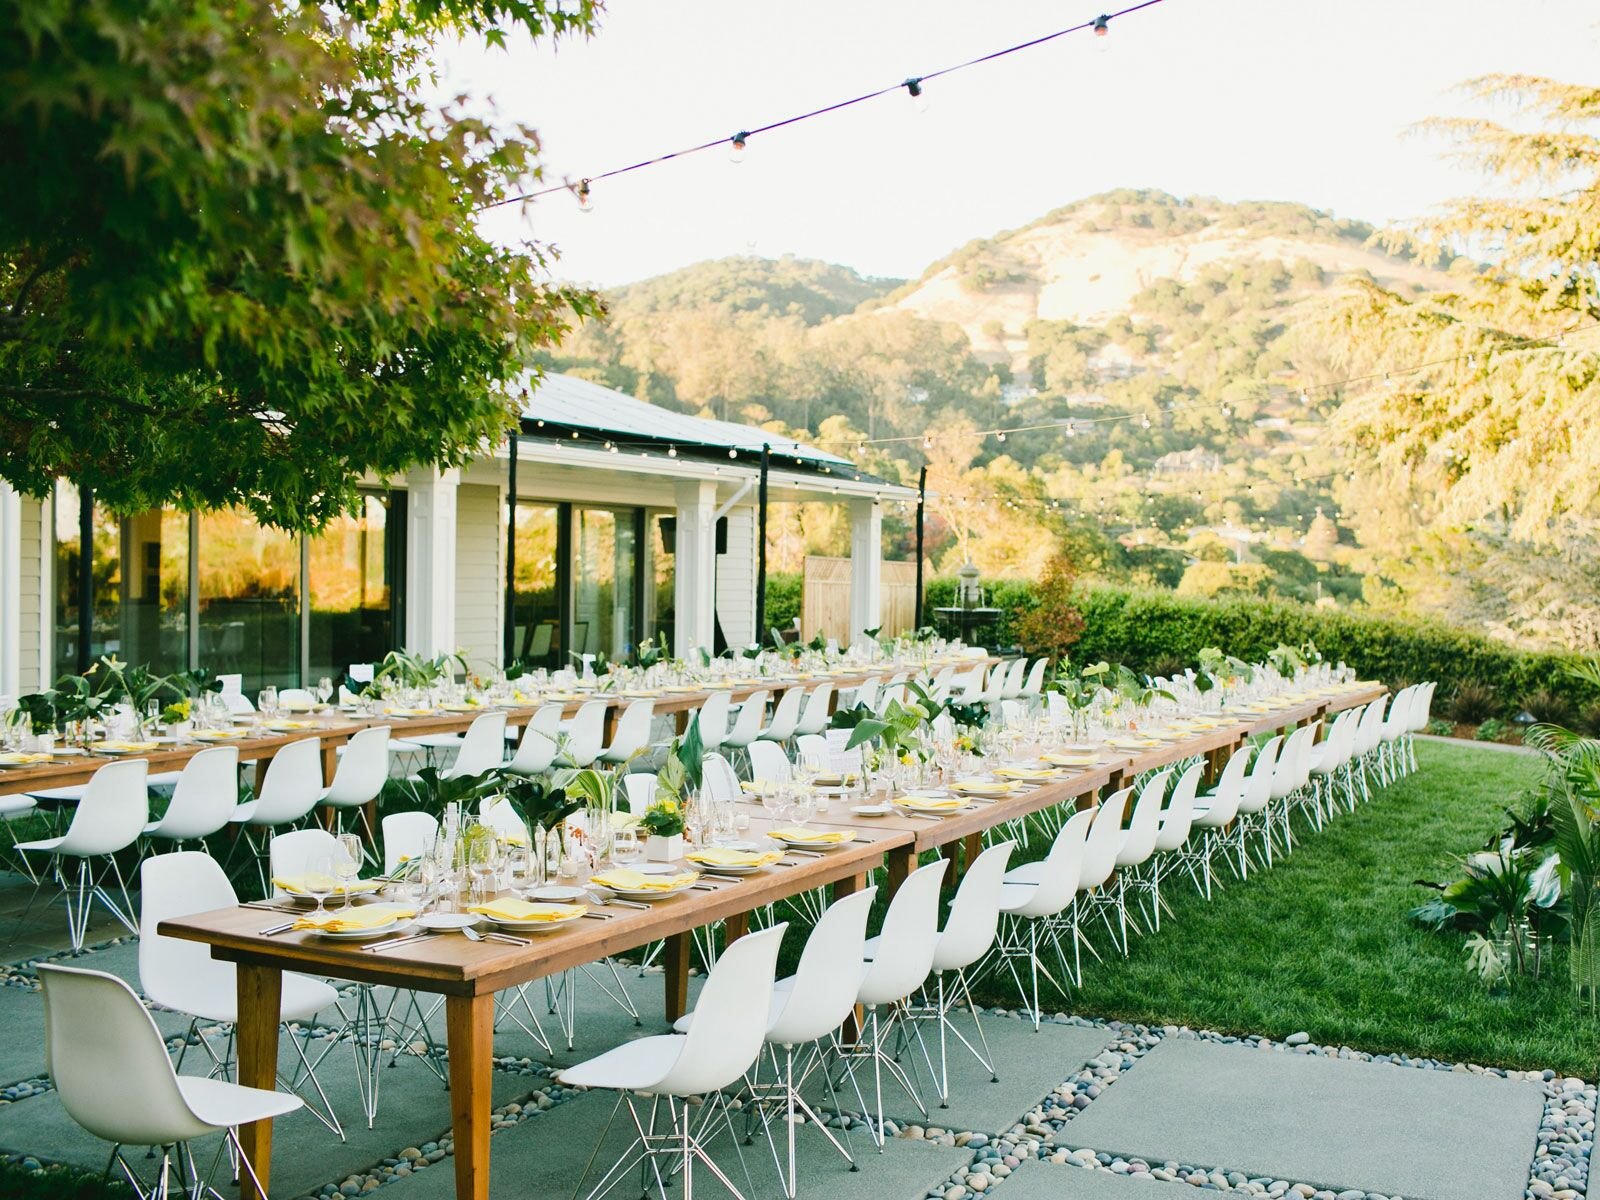 Backyard Wedding Tips How To Plan An At Home Wedding In Your Backyard